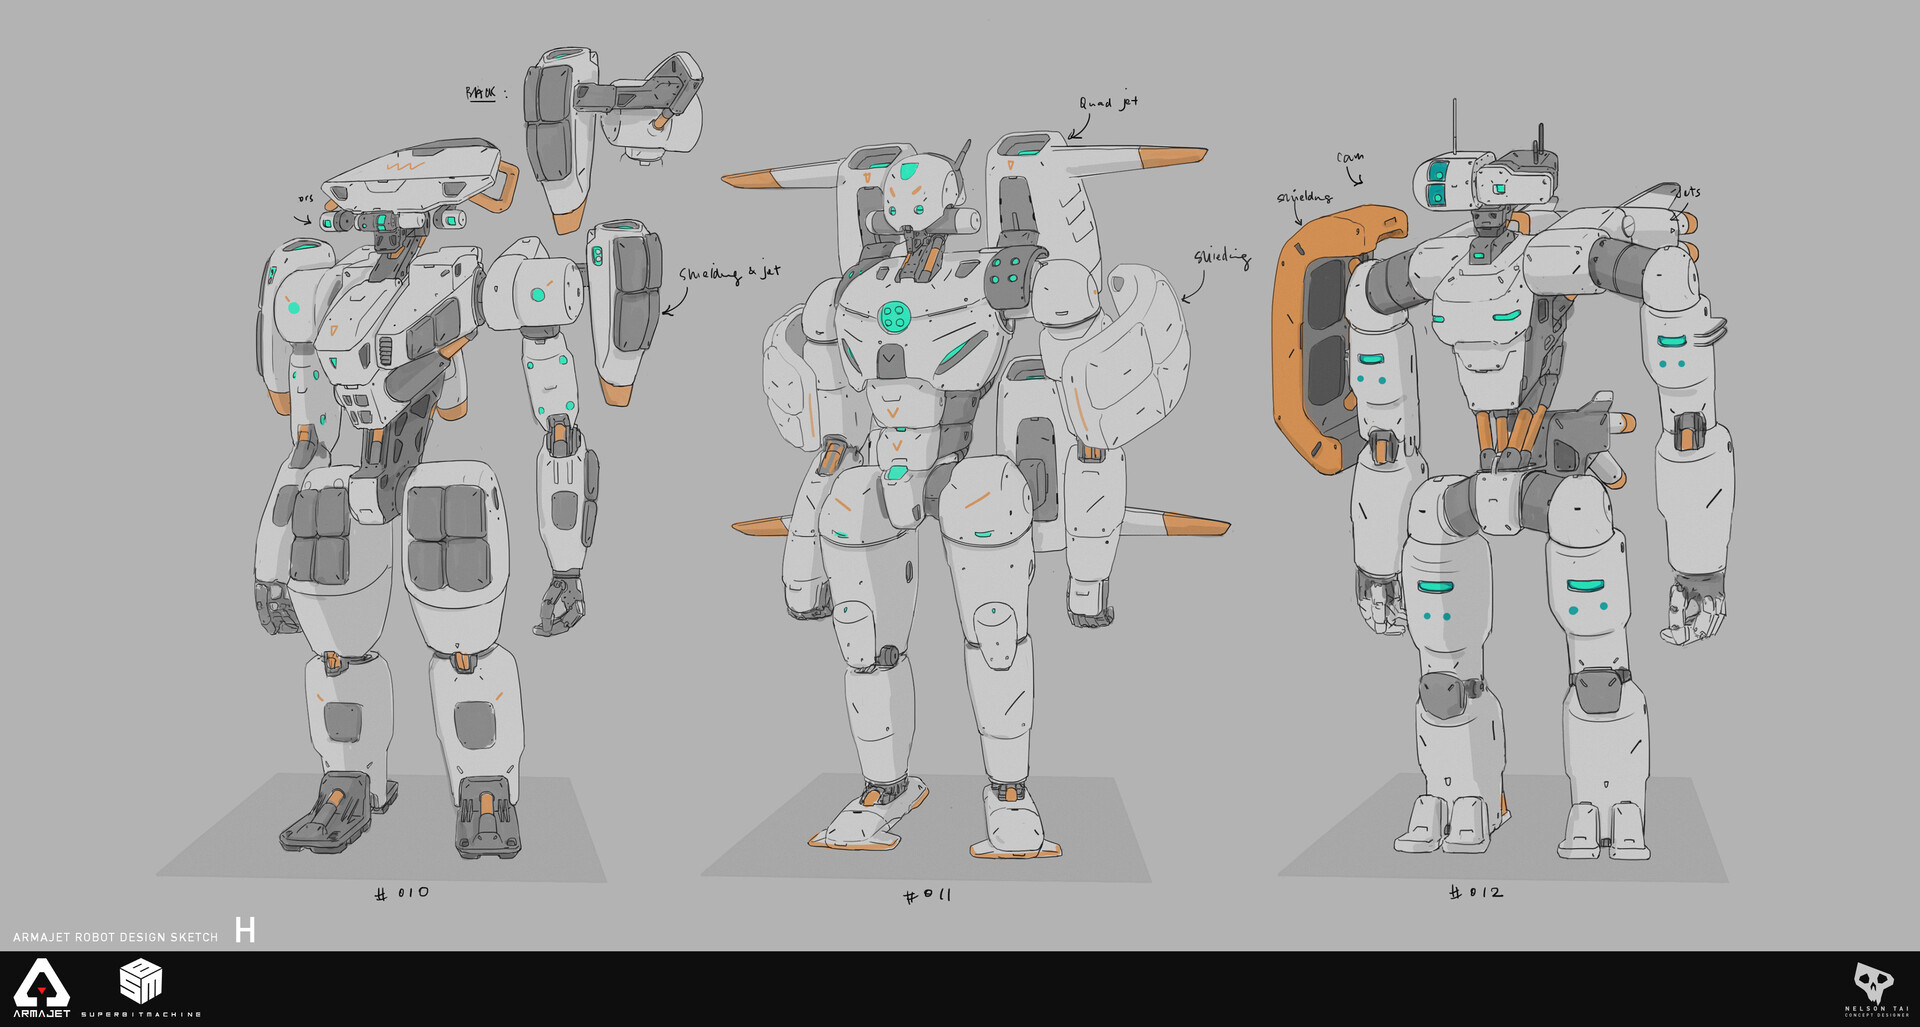 Robo sketches - Exploring different flight and shielding configurations.